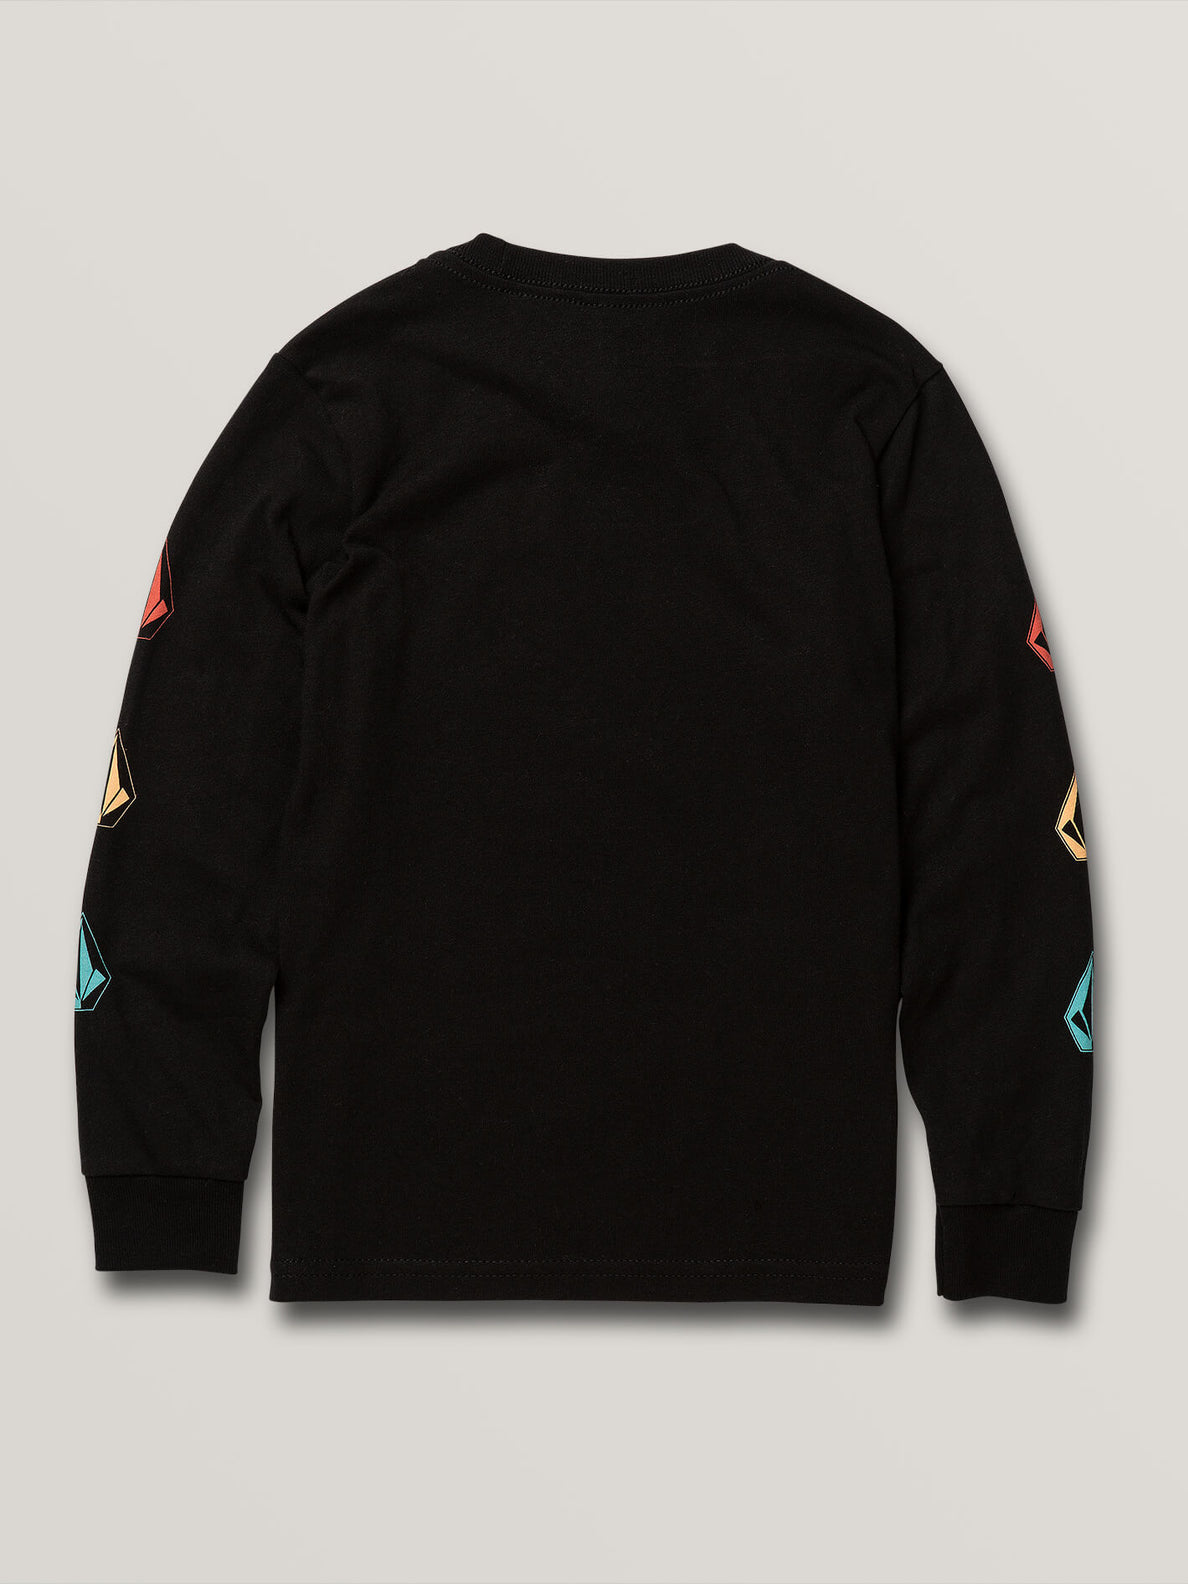 LITTLE BOYS DEADLY STONES LONG SLEEVE TEE - BLACK ON BLACK